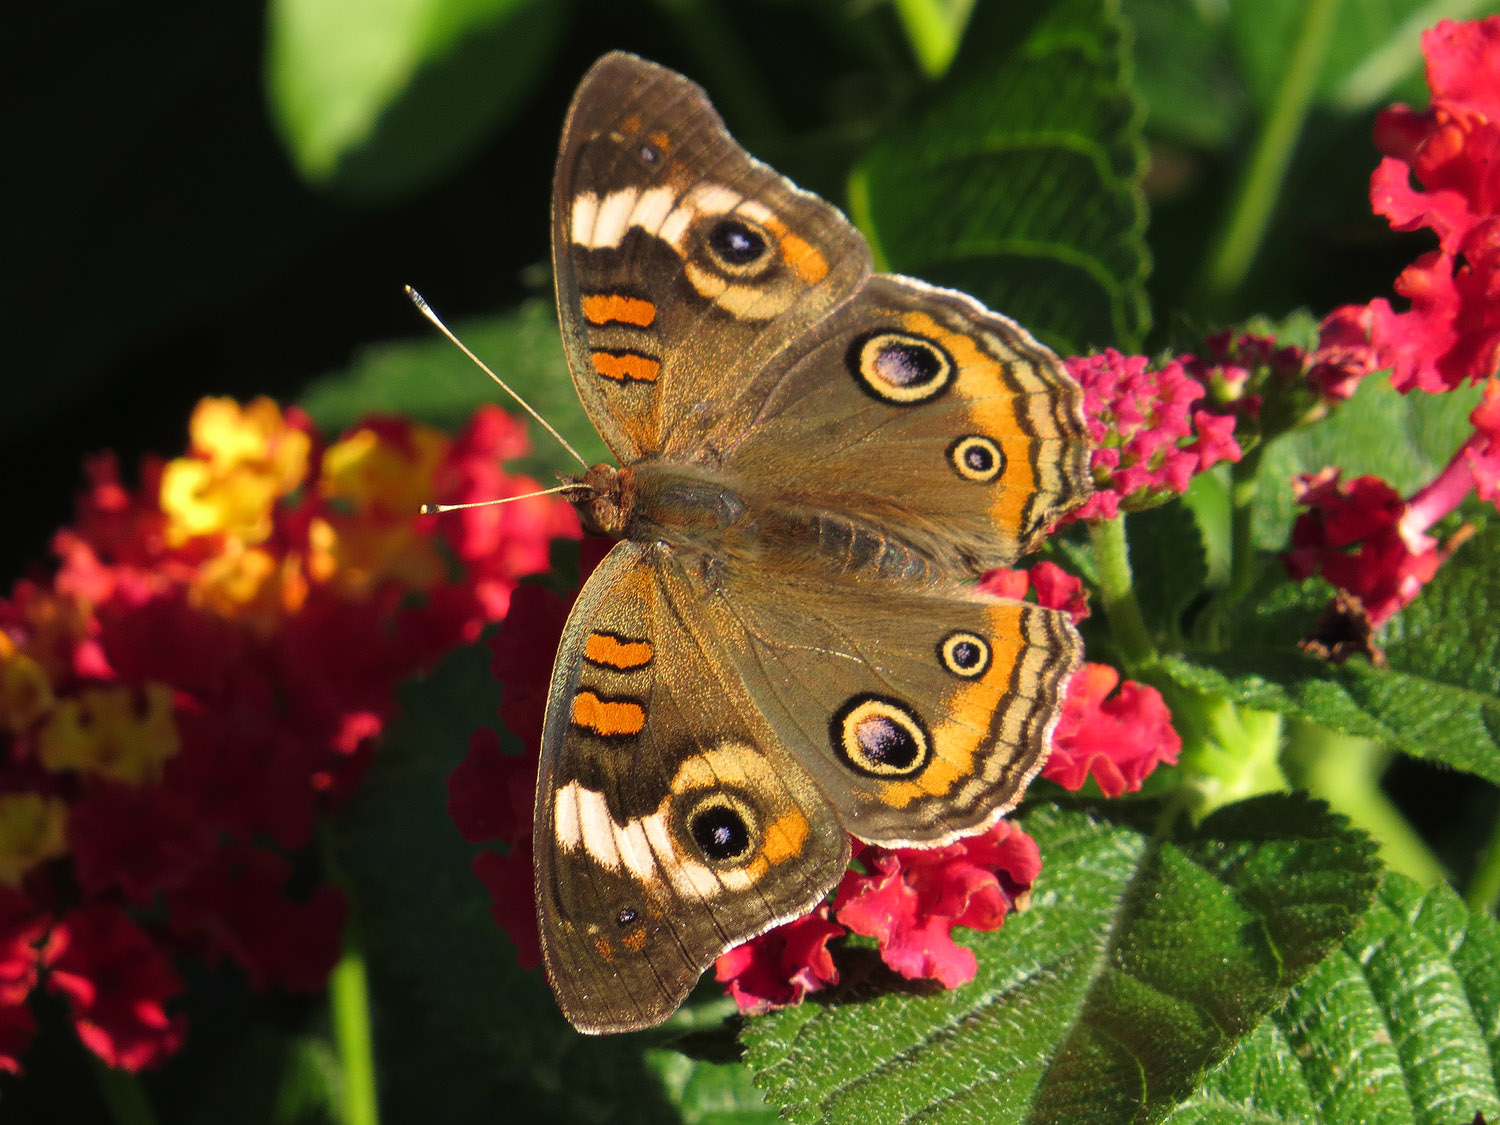 Common buckeye, Conservatory Garden, Oct. 7, 2016